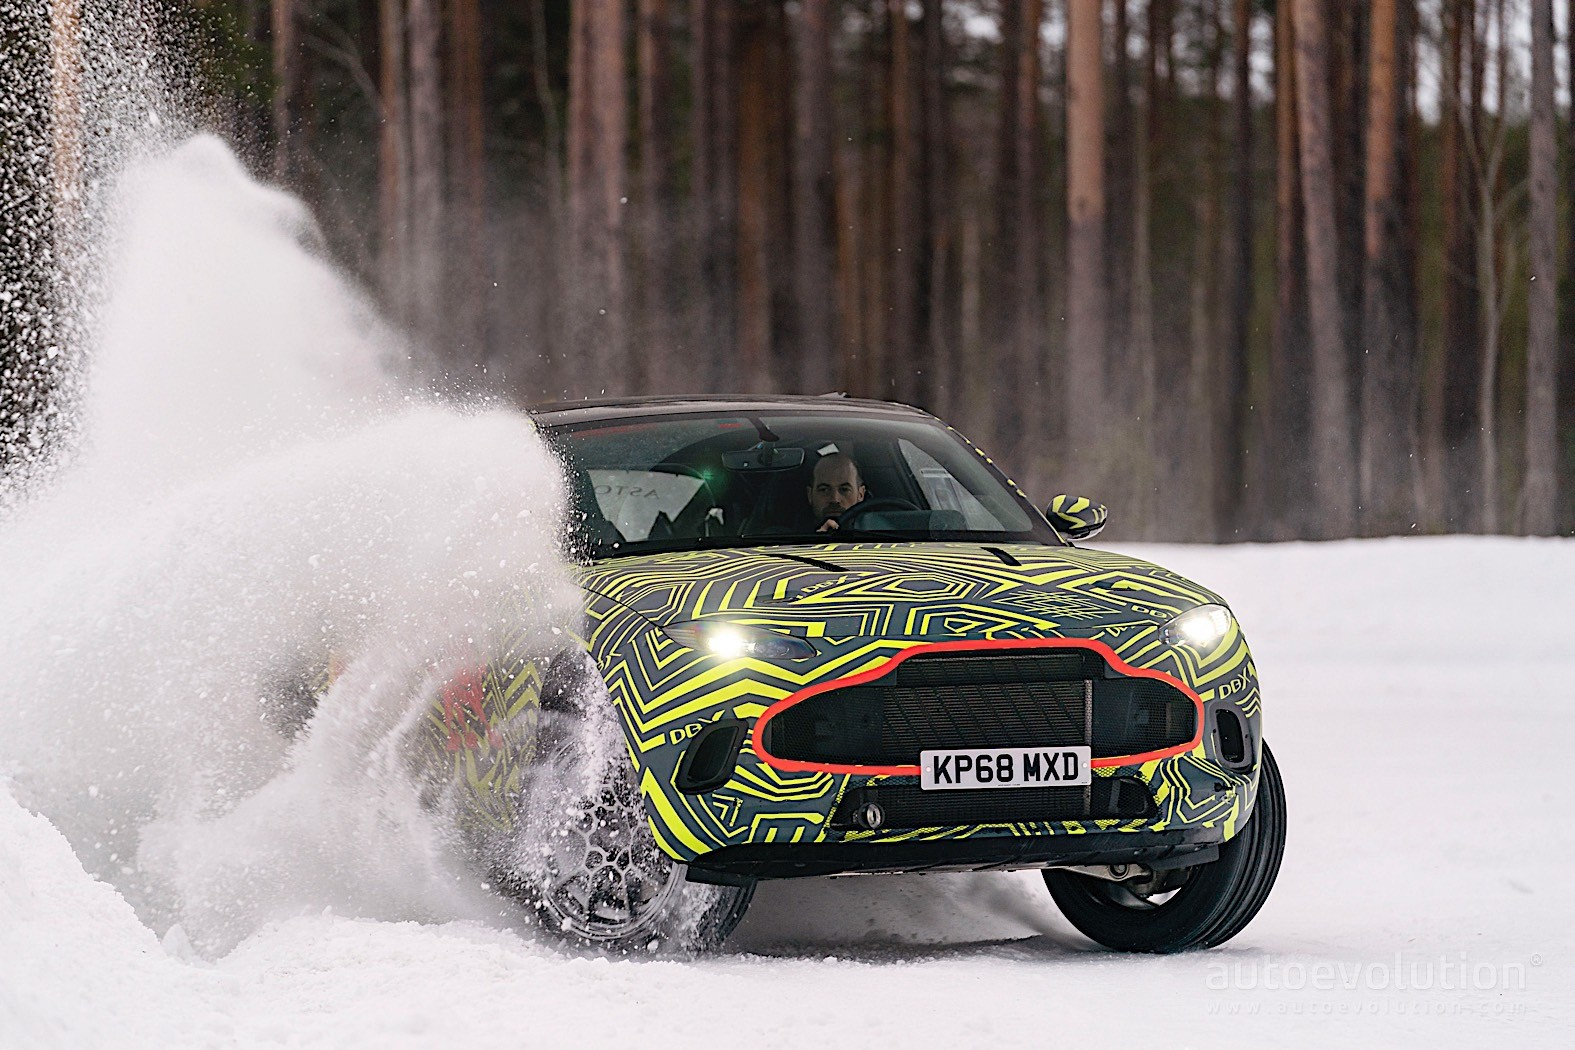 2020 Aston Martin Dbx Shown Drifting On Snow In Official Clip Autoevolution